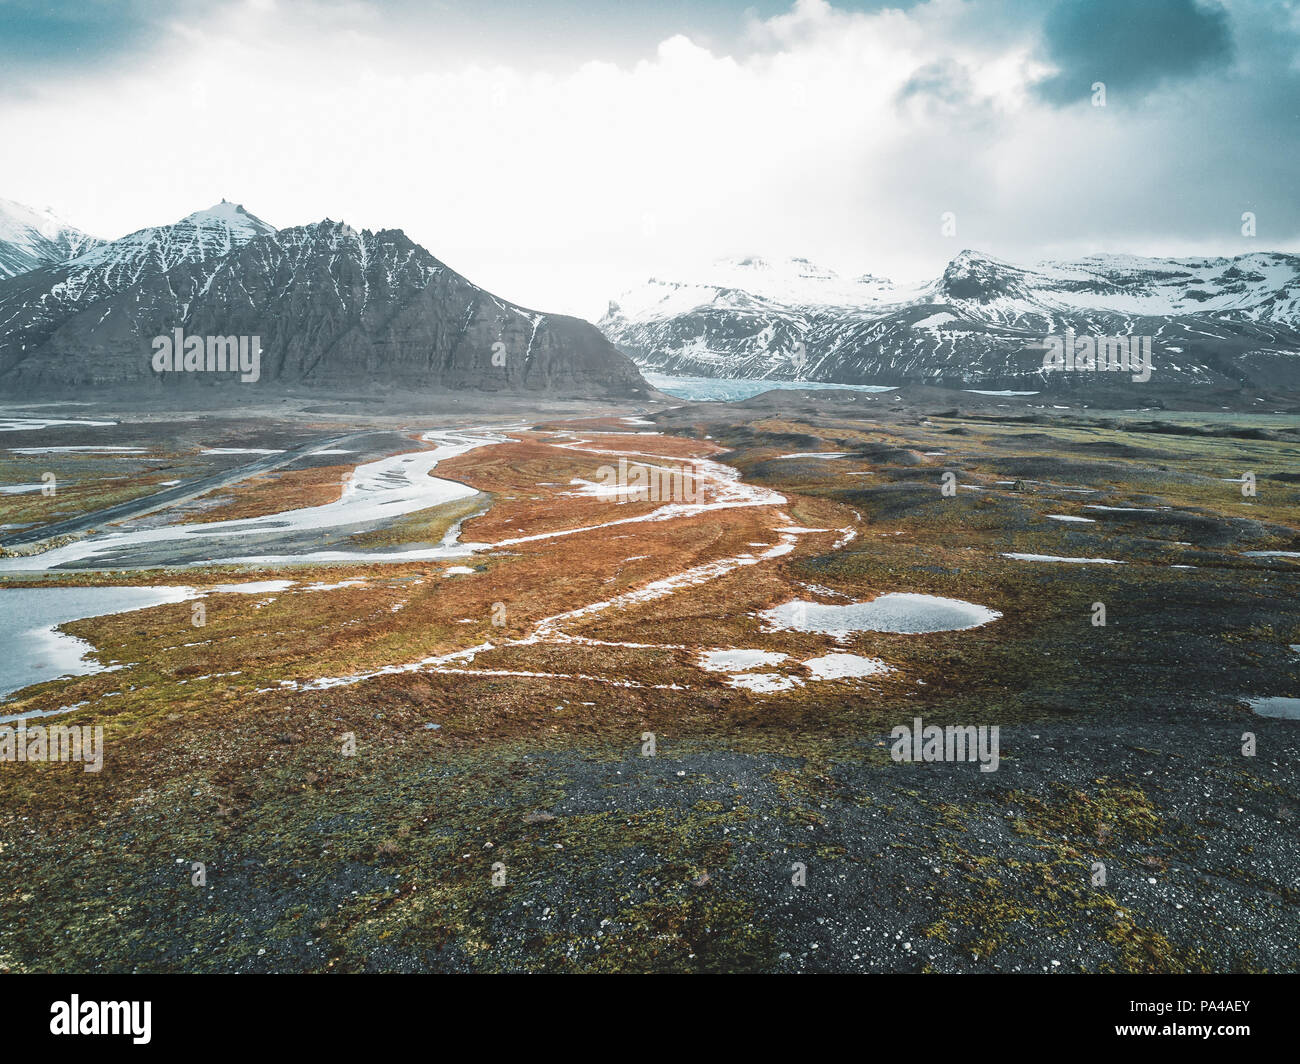 Vatnajokull glacier aerial drone image with clouds and blue sky. Dramatic winter scene of Vatnajokull National Park, Iceland, Europe. Beauty of nature concept background. - Stock Image